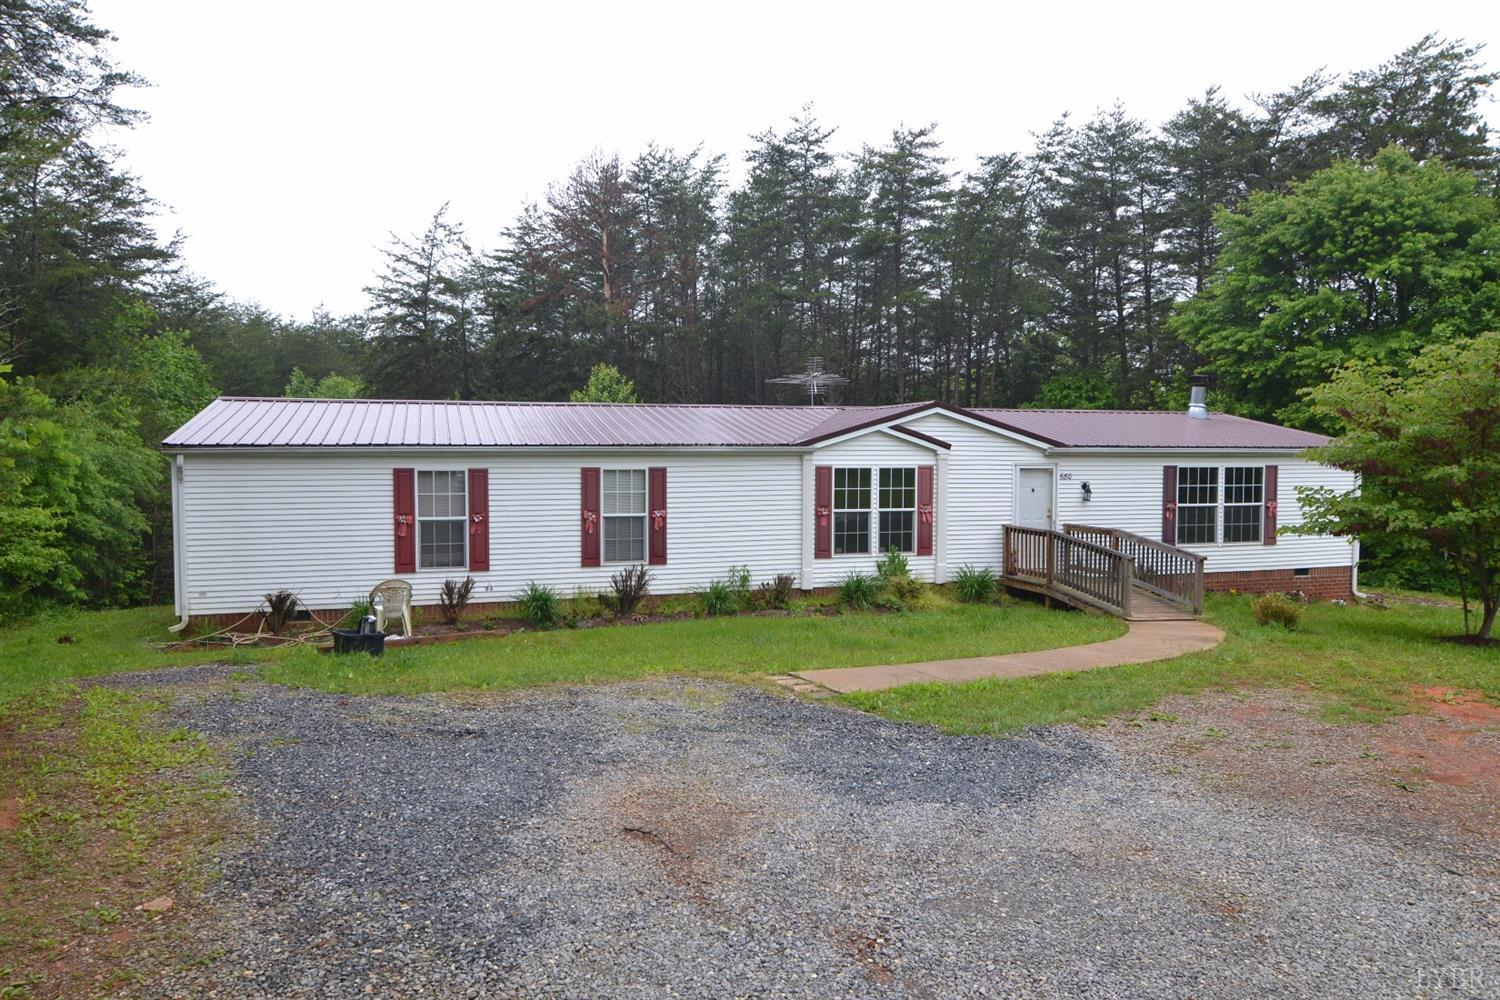 Image of Residential for Sale near Altavista, Virginia, in Campbell county: 5.11 acres